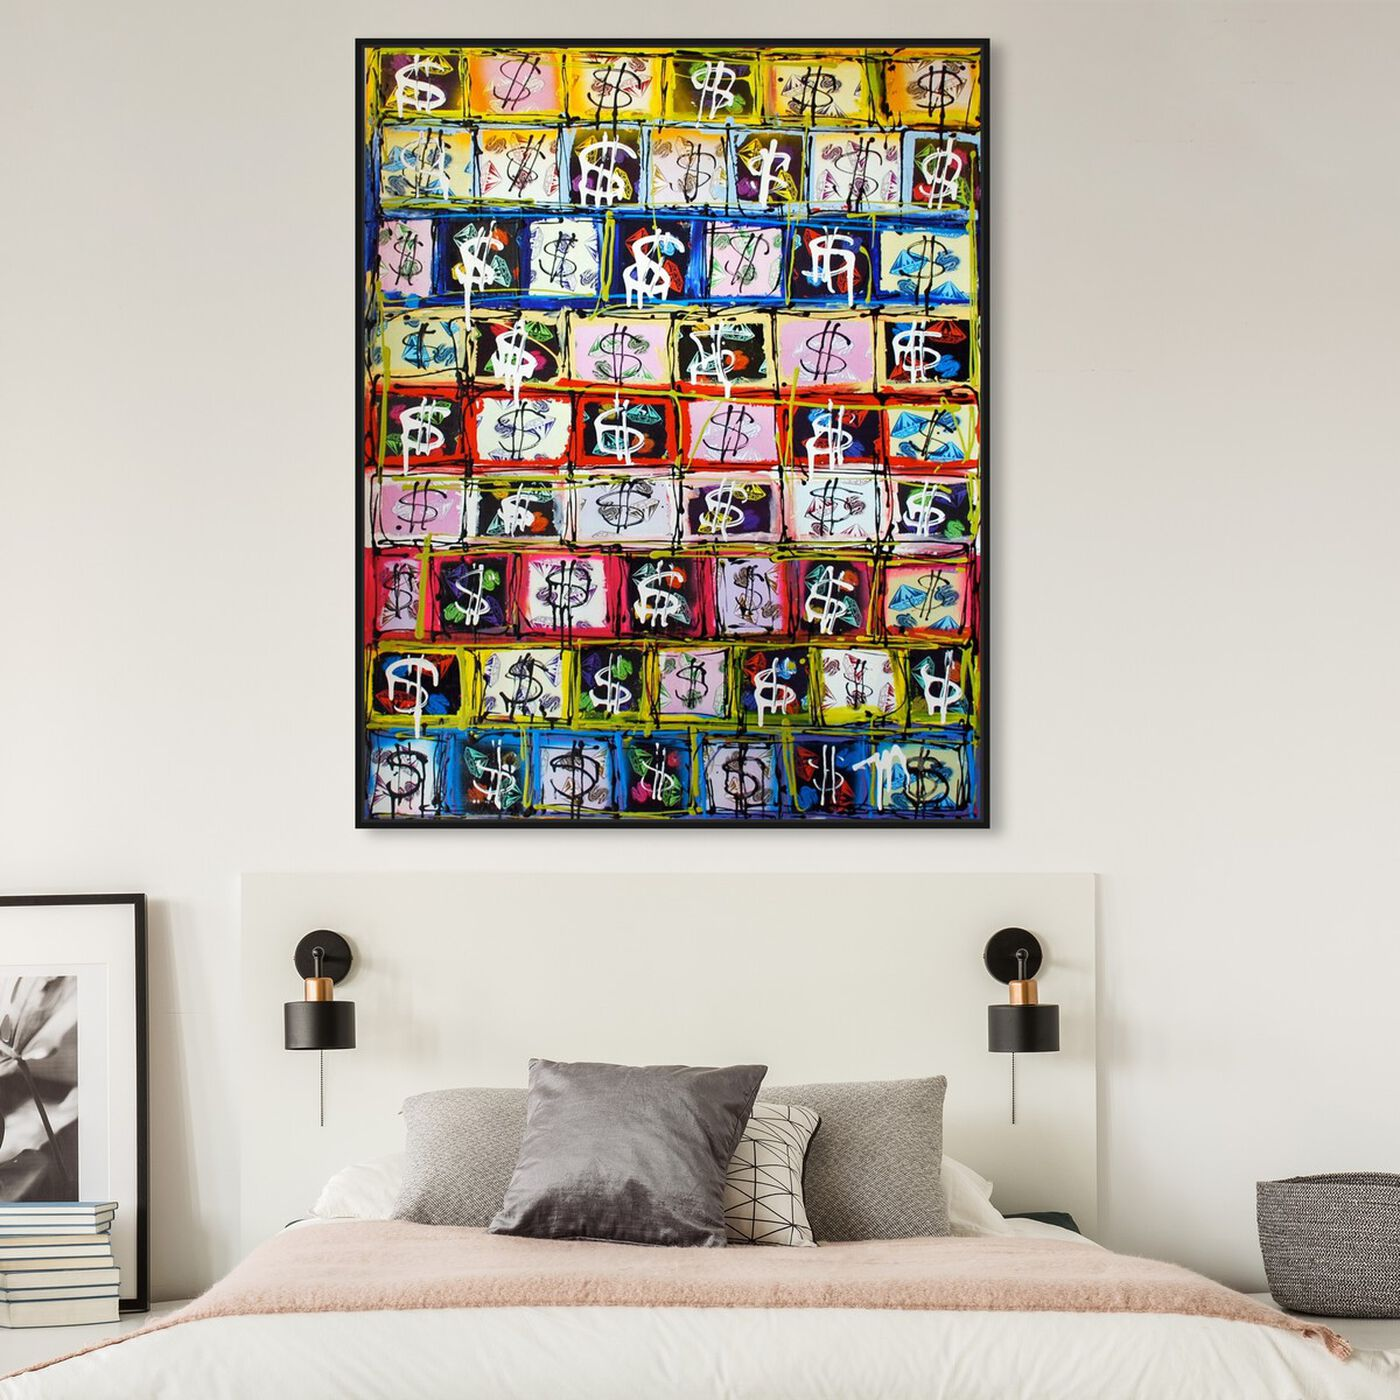 Hanging view of Money Game by Tiago Magro featuring symbols and objects and symbols art.